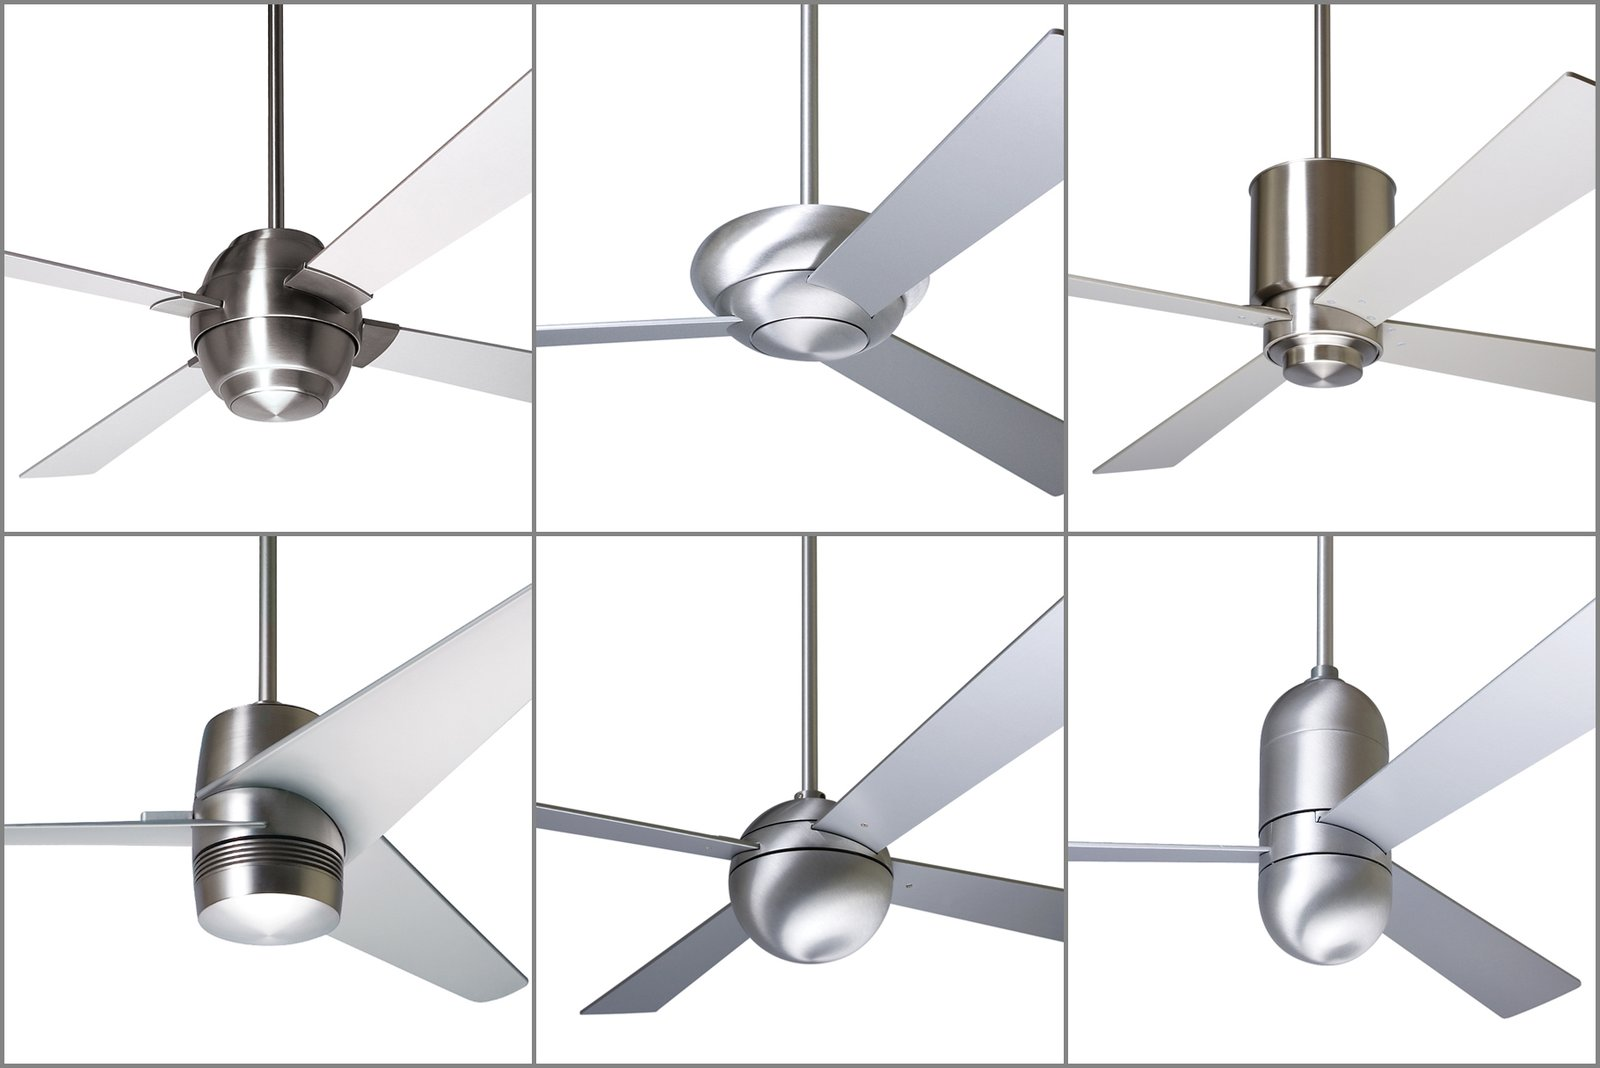 Some of the Modern Fan Company's most popular and iconic designs include (from left to right, top to bottom) the Gusto, Altus, Lapa, Velo, Ball, and Cirrus fans. The collection demonstrates minimalist design principles that marry geometric forms with contemporary finishes.  Photo 2 of 8 in Taking Flight: A Dose of Brazilian Design Lifts the Ceiling Fan to New Heights